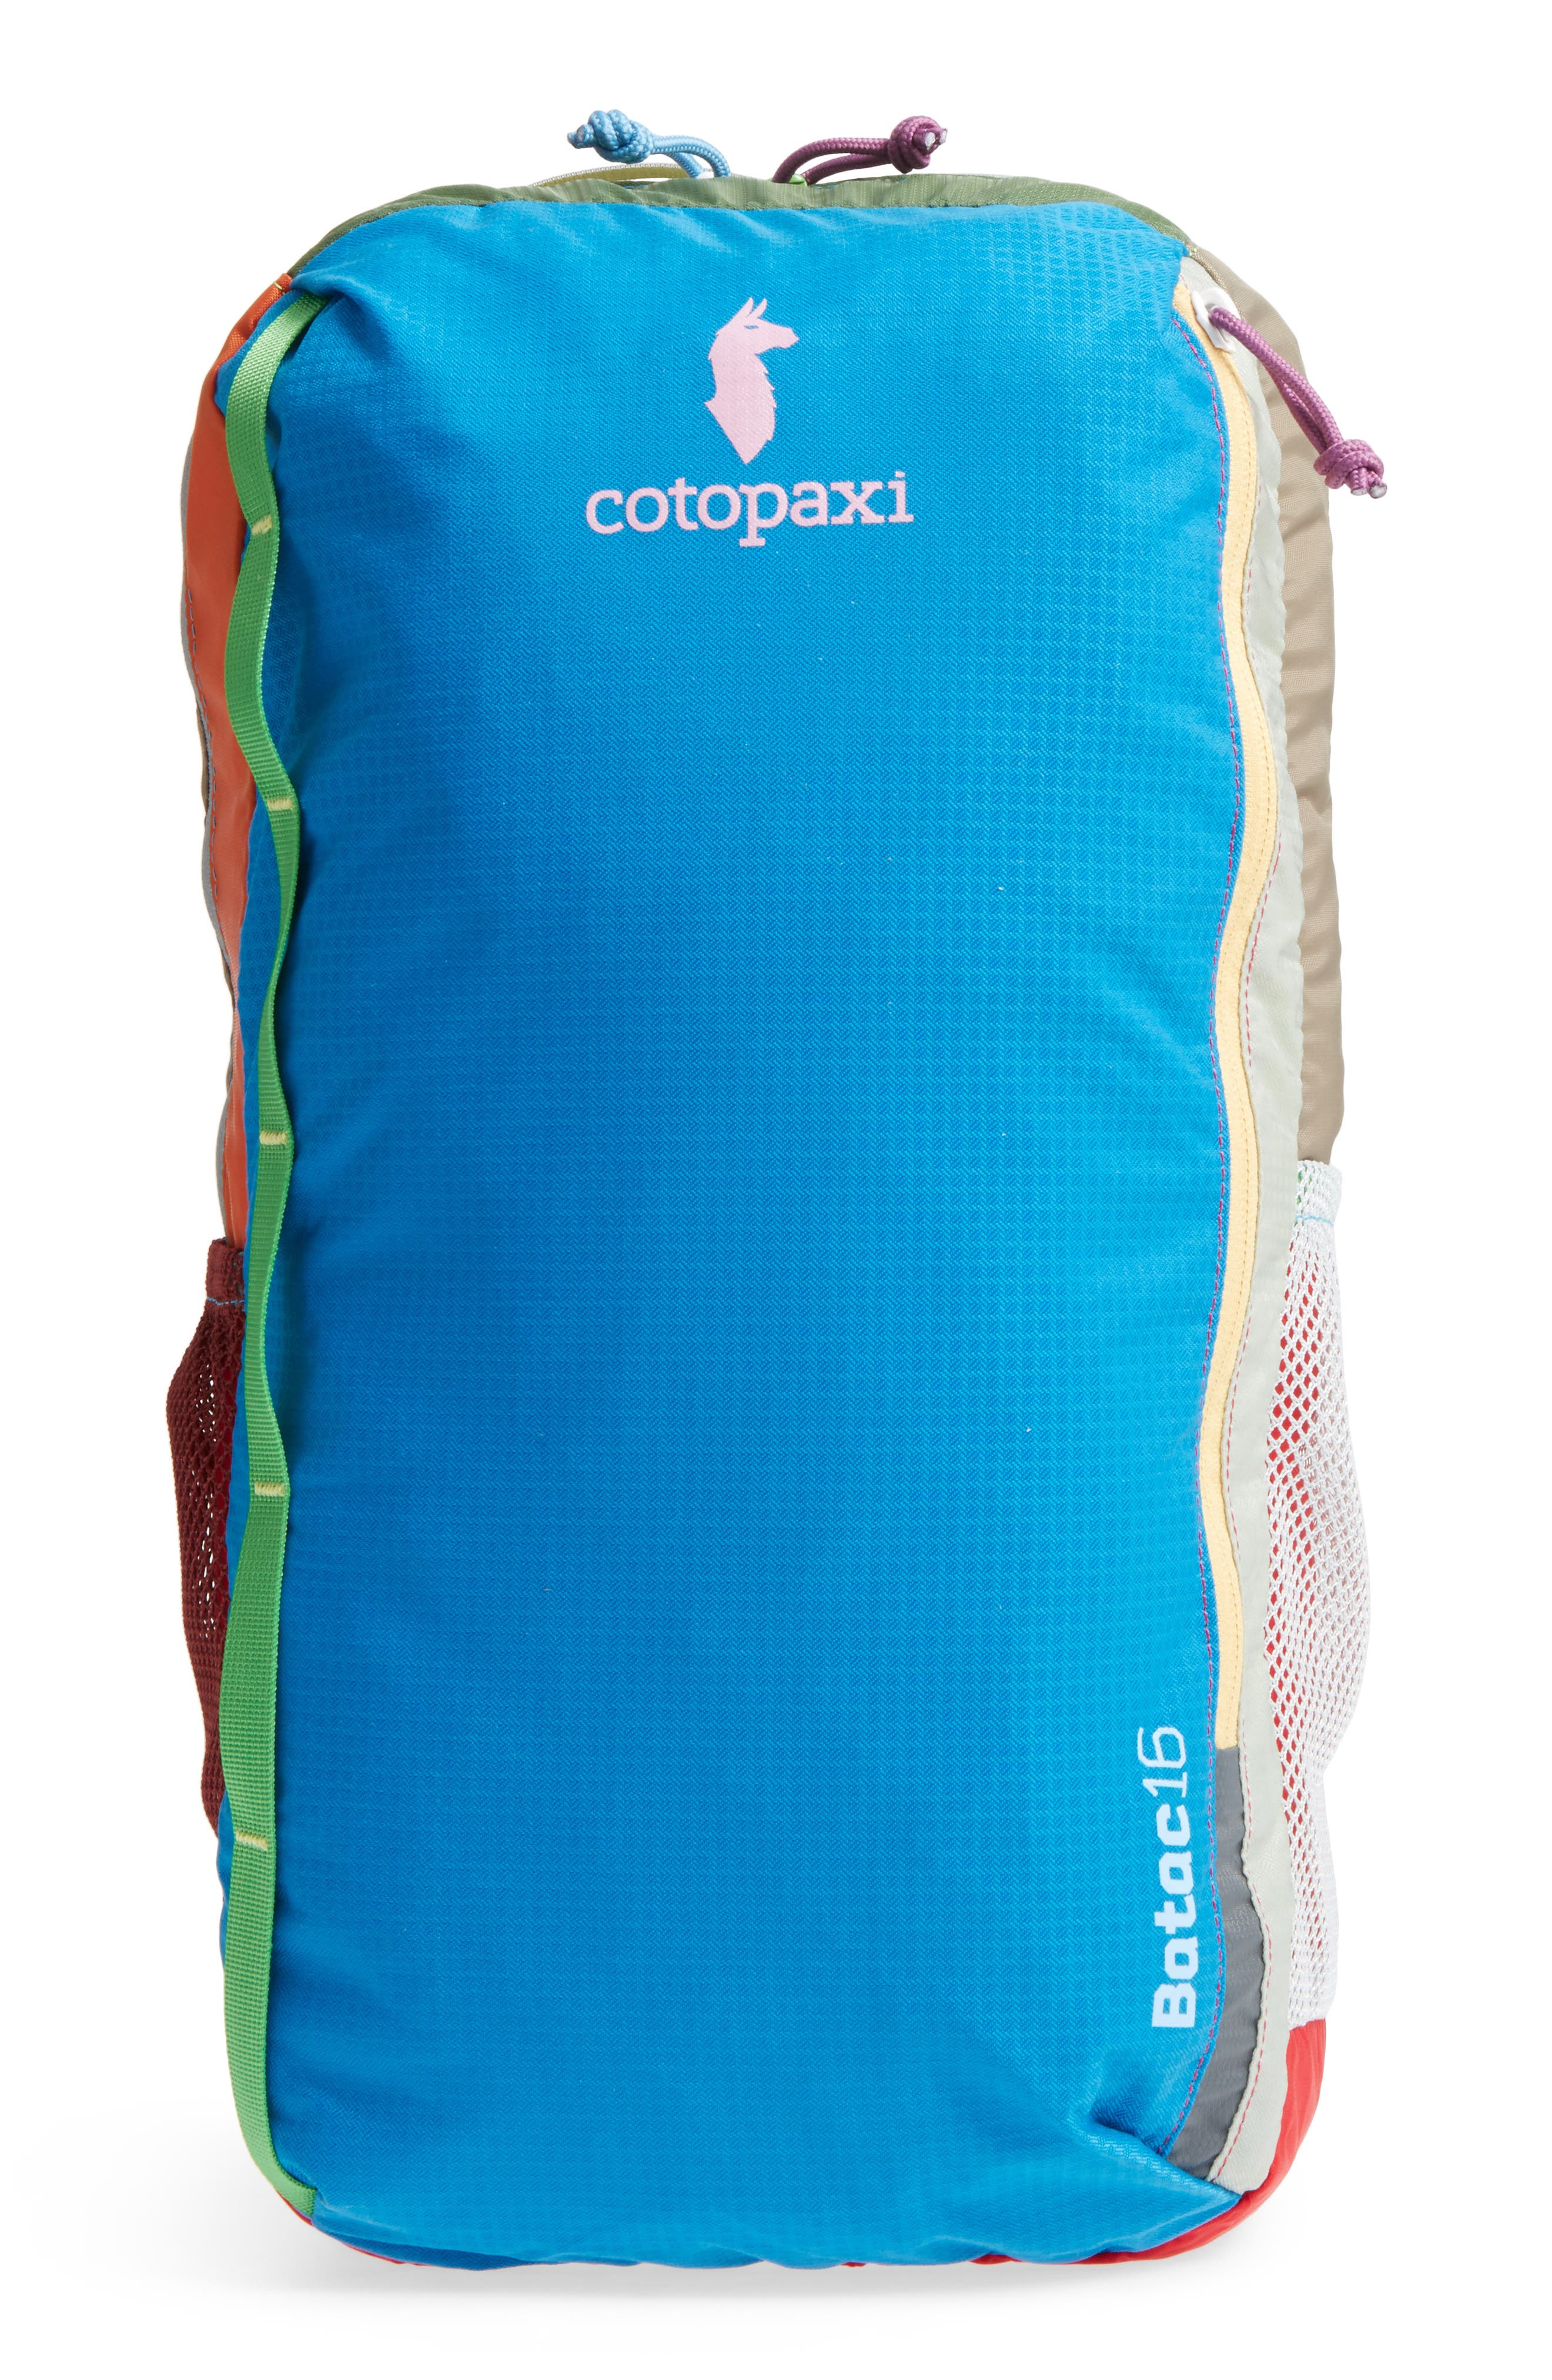 Batac Del Día One of a Kind Ripstop Nylon Daypack,                             Main thumbnail 1, color,                             Assorted